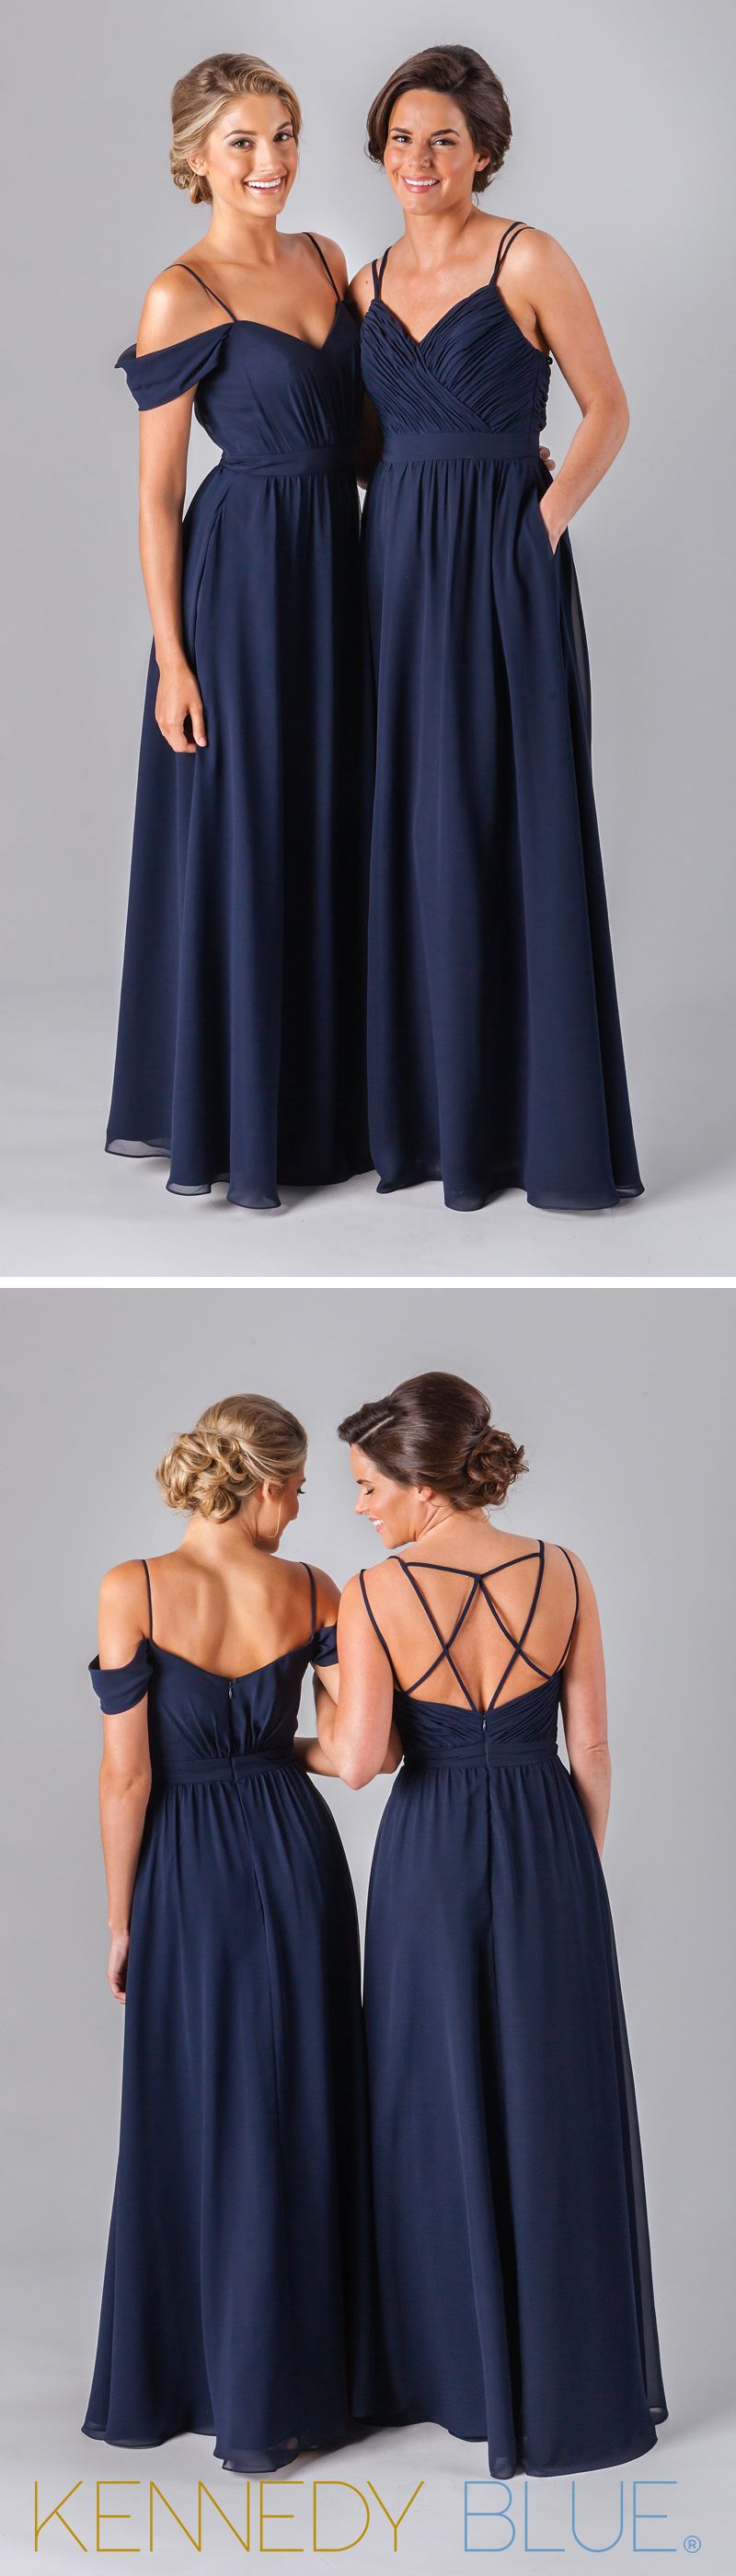 Mix and match chiffon bridesmaid dresses in navy from the Fall 2016 collection.